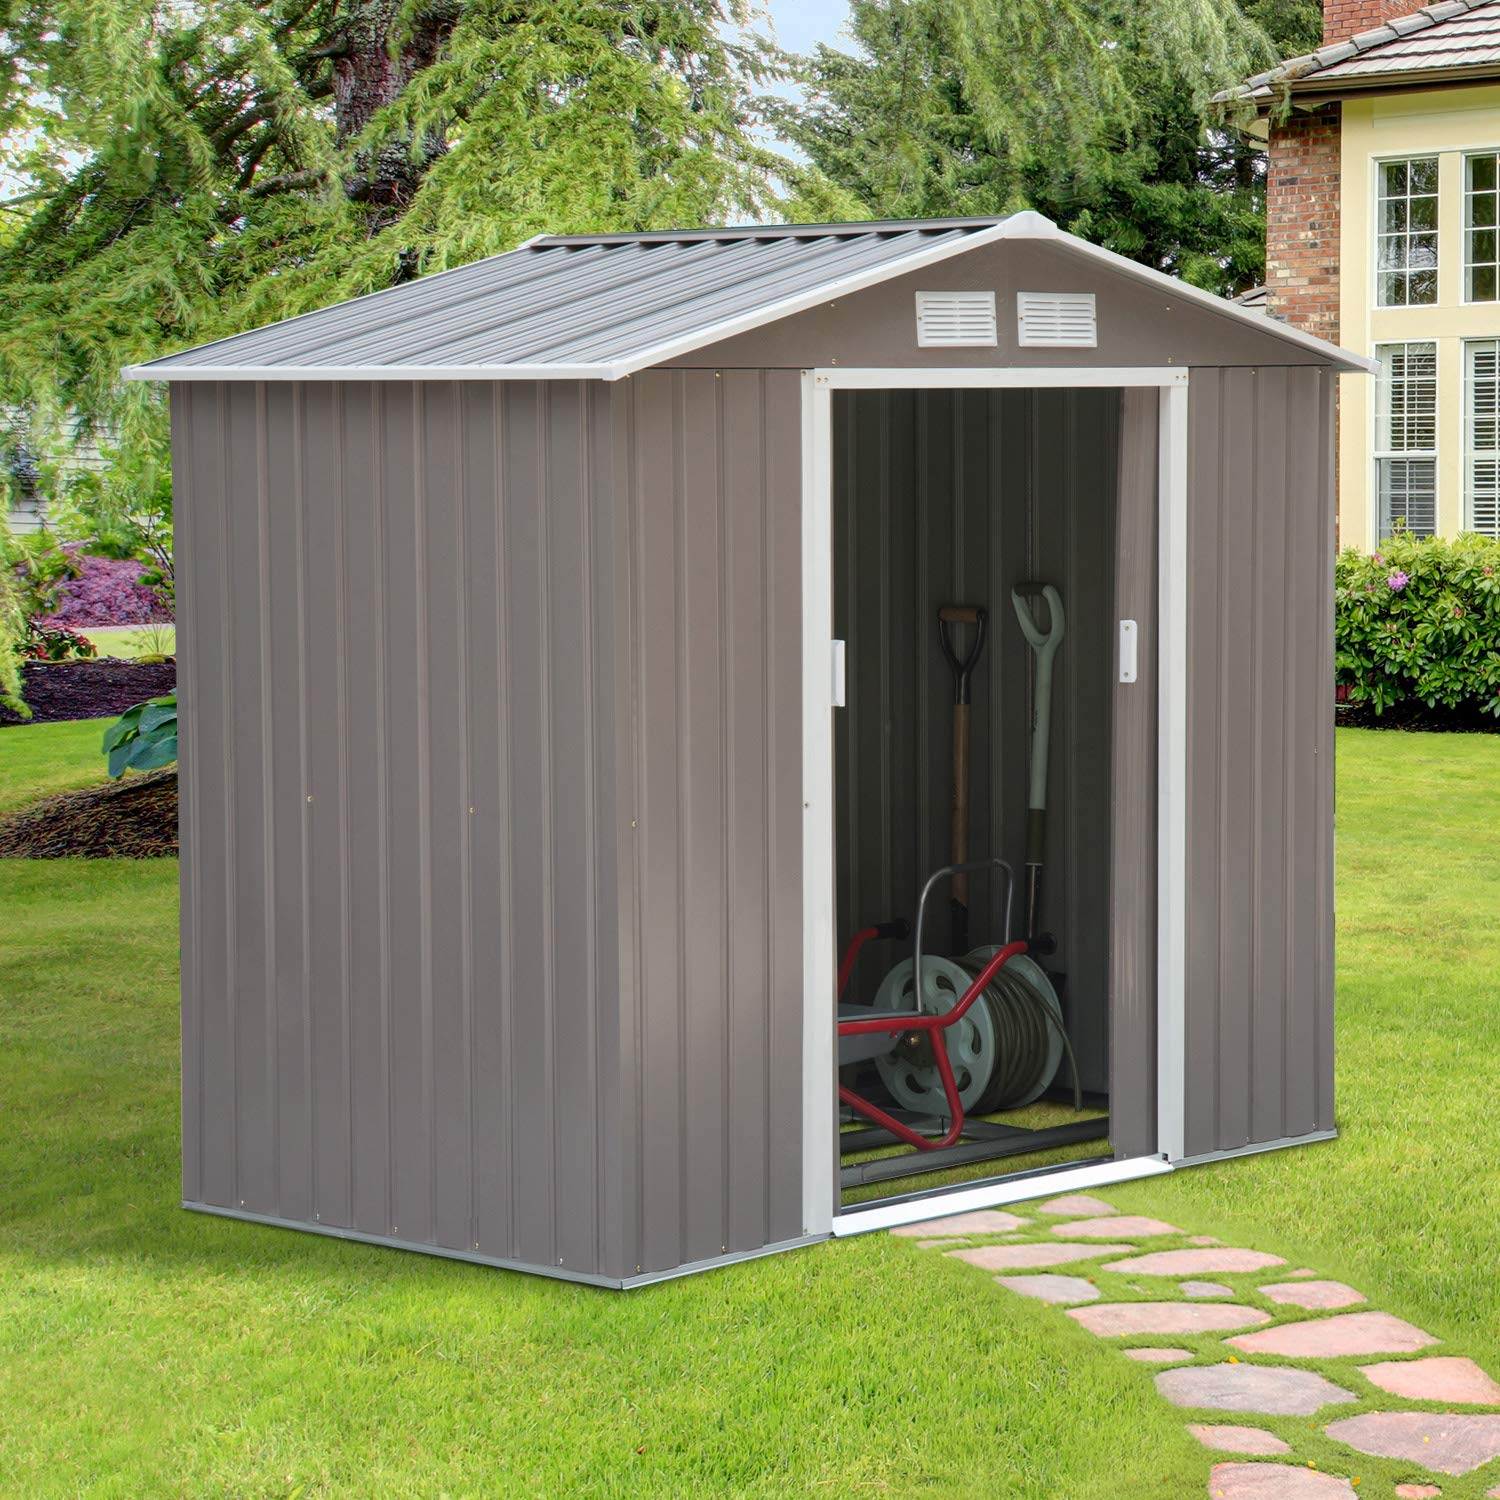 7ft x 4ft, Grey Outsunny Lockable Garden Shed Large Patio Roofed Tool Metal Storage Building Foundation Sheds Box Outdoor Furniture